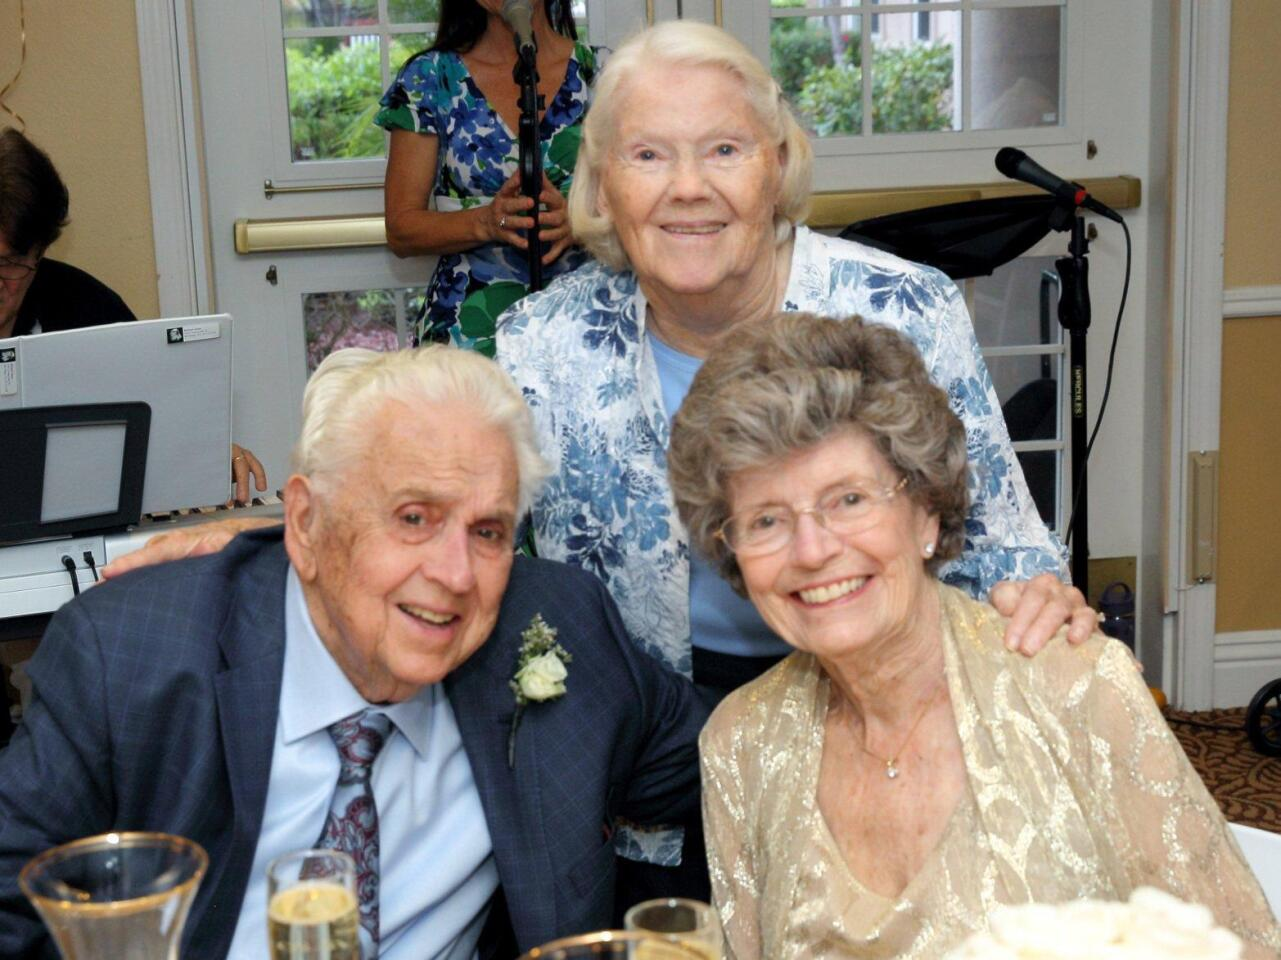 Newlyweds Hugh Foreman and Doris Swanlund (front) with Gloria Brewster,